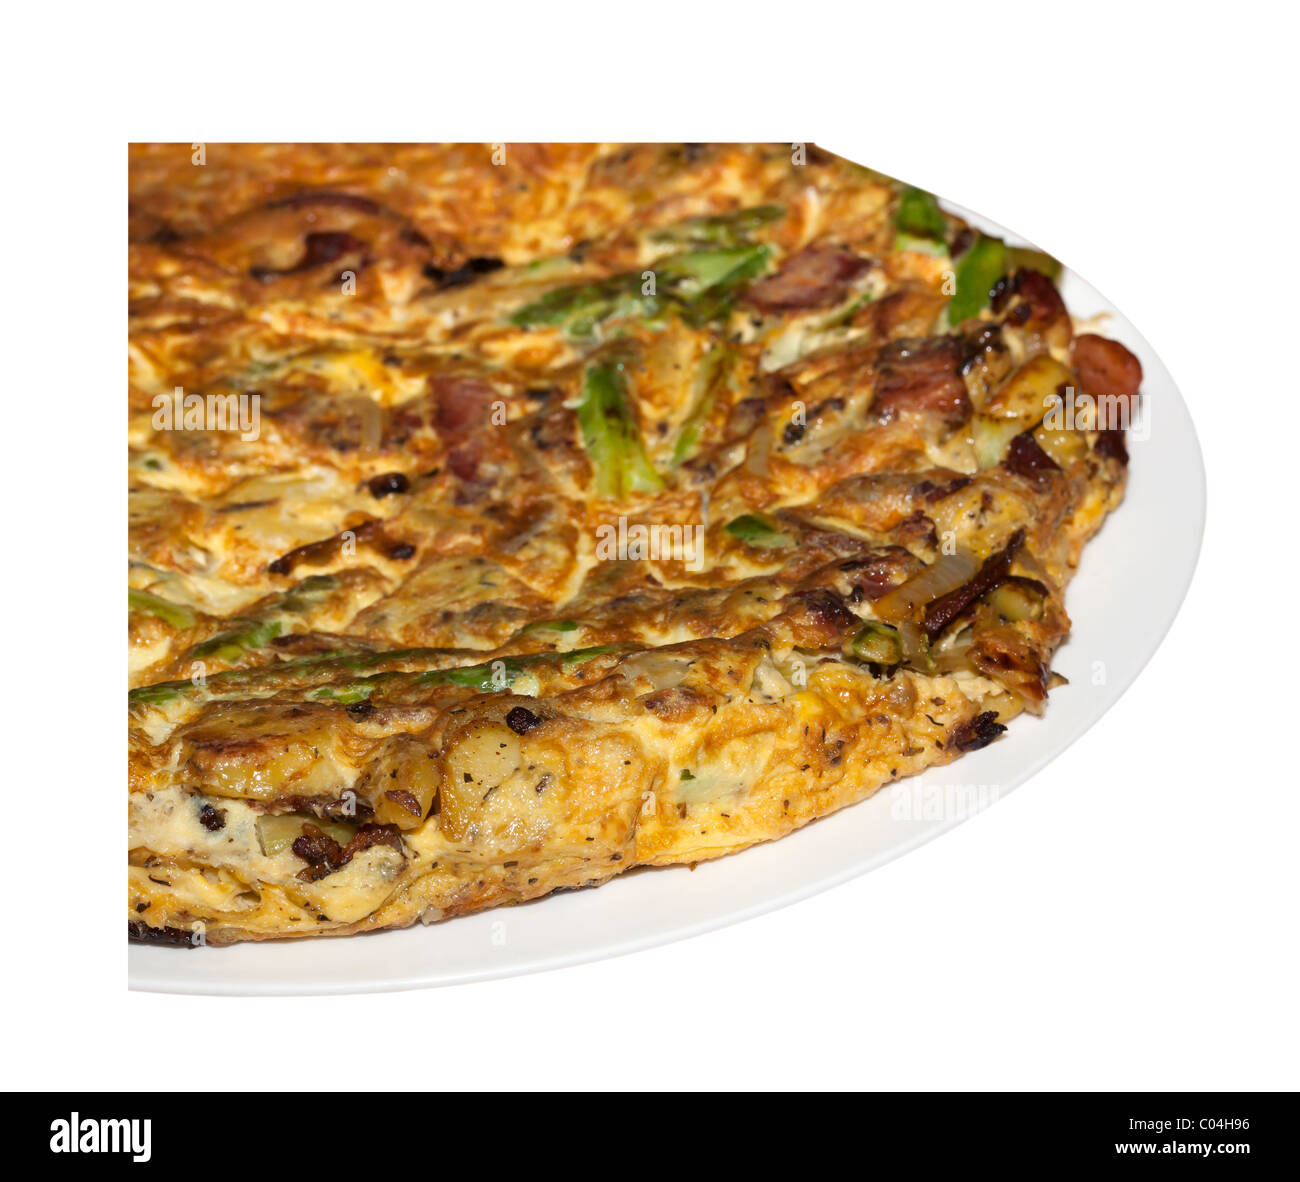 Fried asparagus, potato, and bacon frittata omelet isolated on white. Charles Lupica - Stock Image